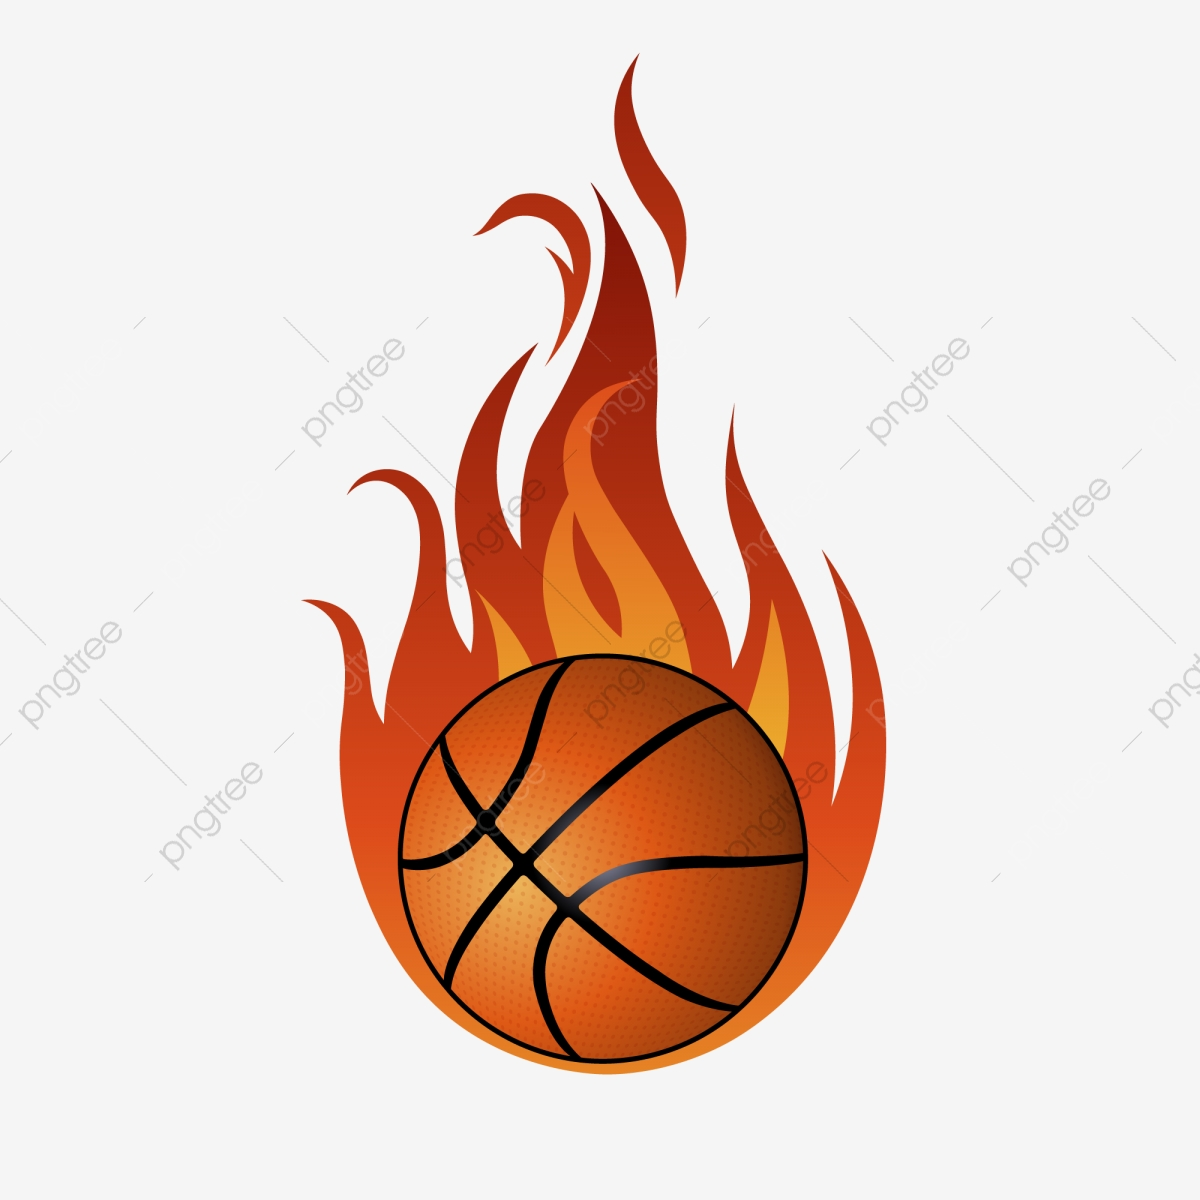 Burning Basketball With Fire Exaggeration Effect Material.